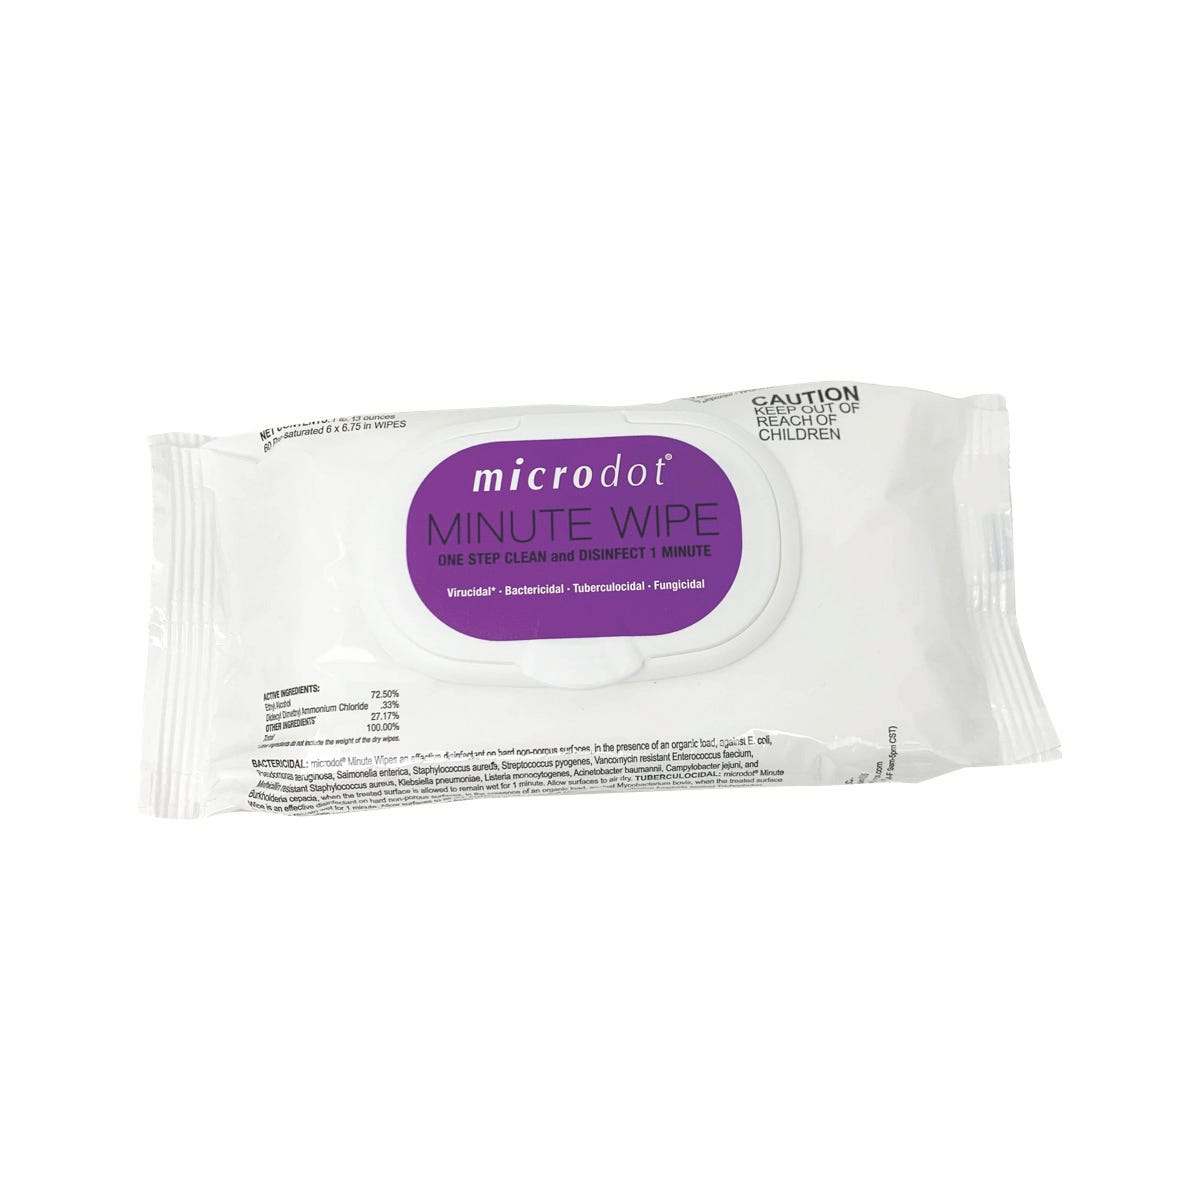 Microdot Minute Wipe Disinfectant, 60 Count Flow Pack